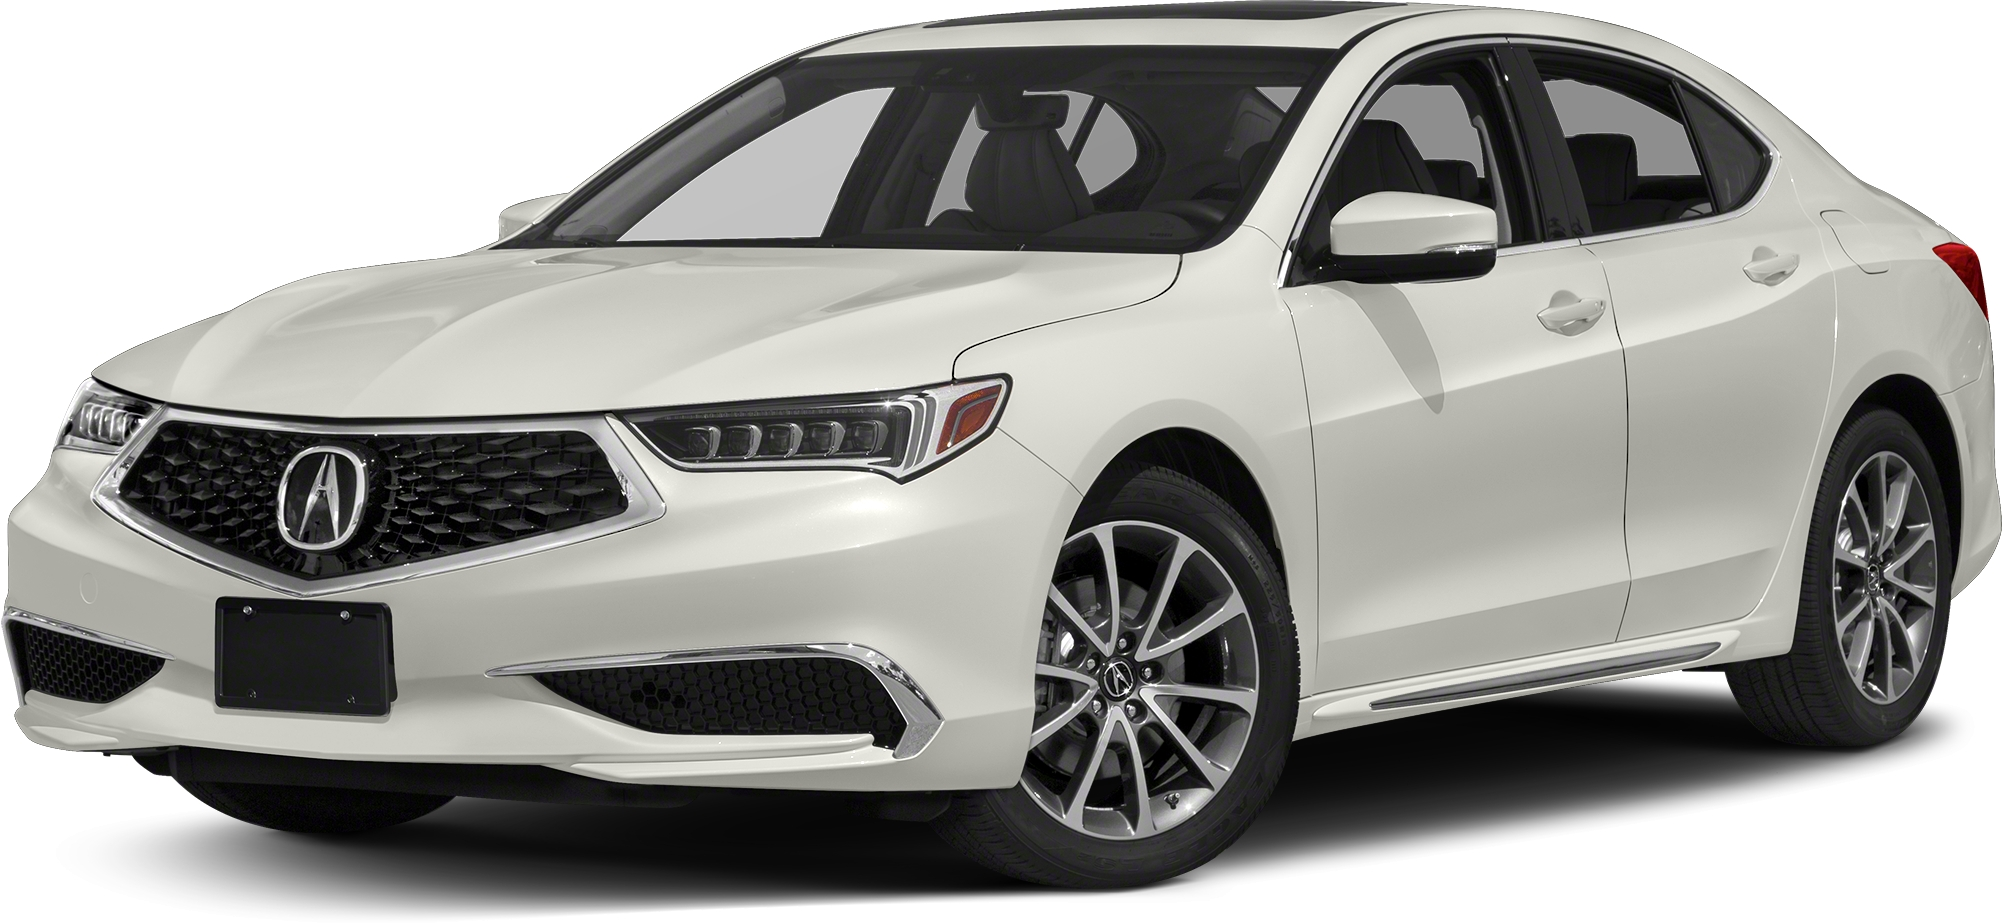 2018 acura tlx 3 5 v 6 9 at sh awd with technology package. Black Bedroom Furniture Sets. Home Design Ideas